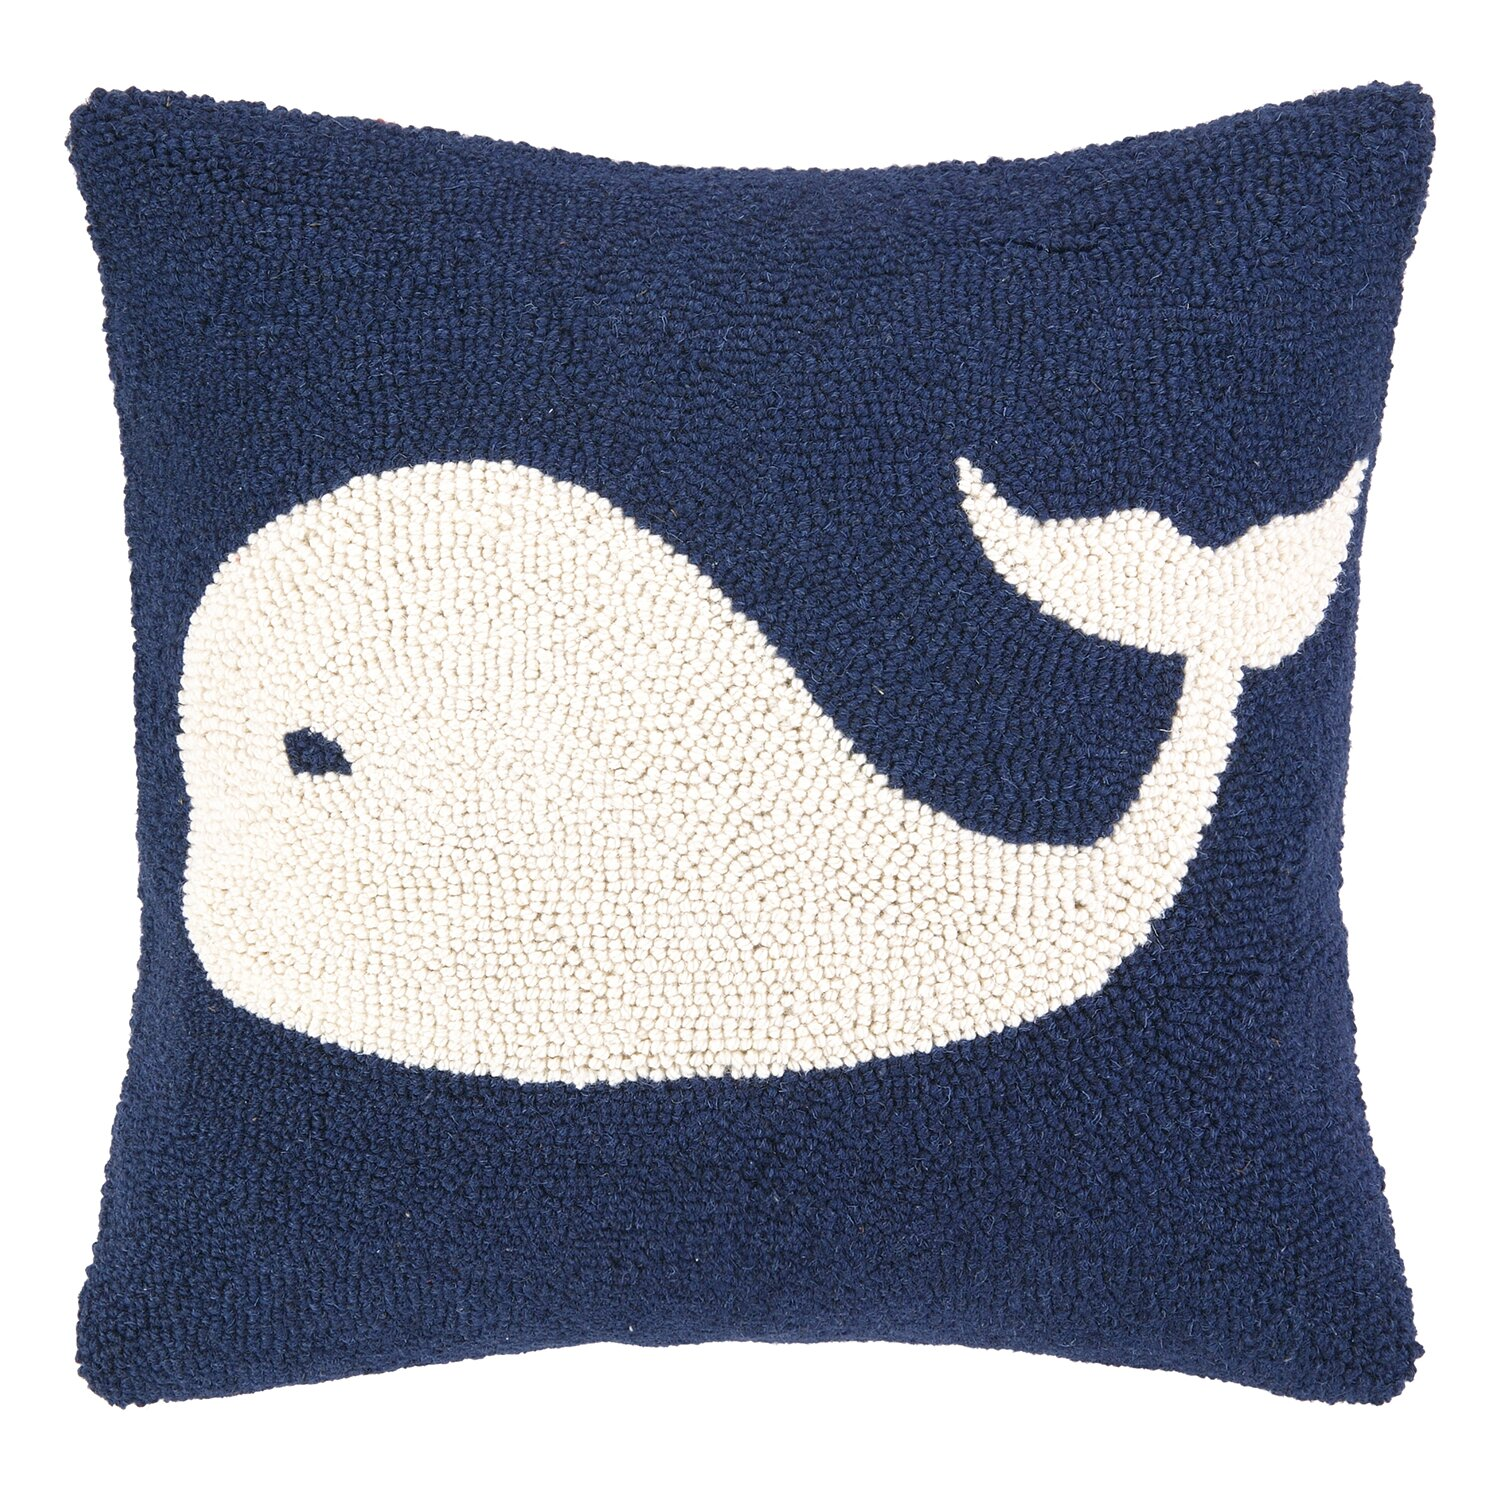 Nautical Coastal Throw Pillows : Peking Handicraft Nautical Hook Whale Throw Pillow & Reviews Wayfair